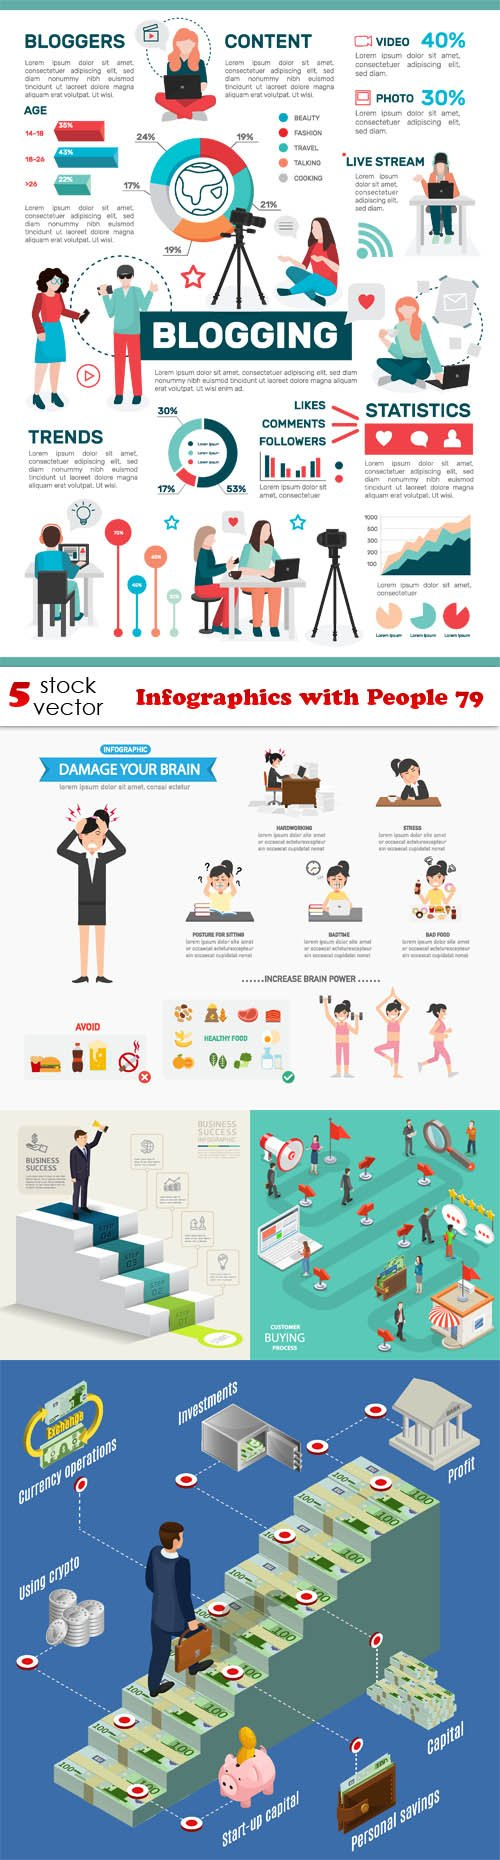 Vectors - Infographics with People 79